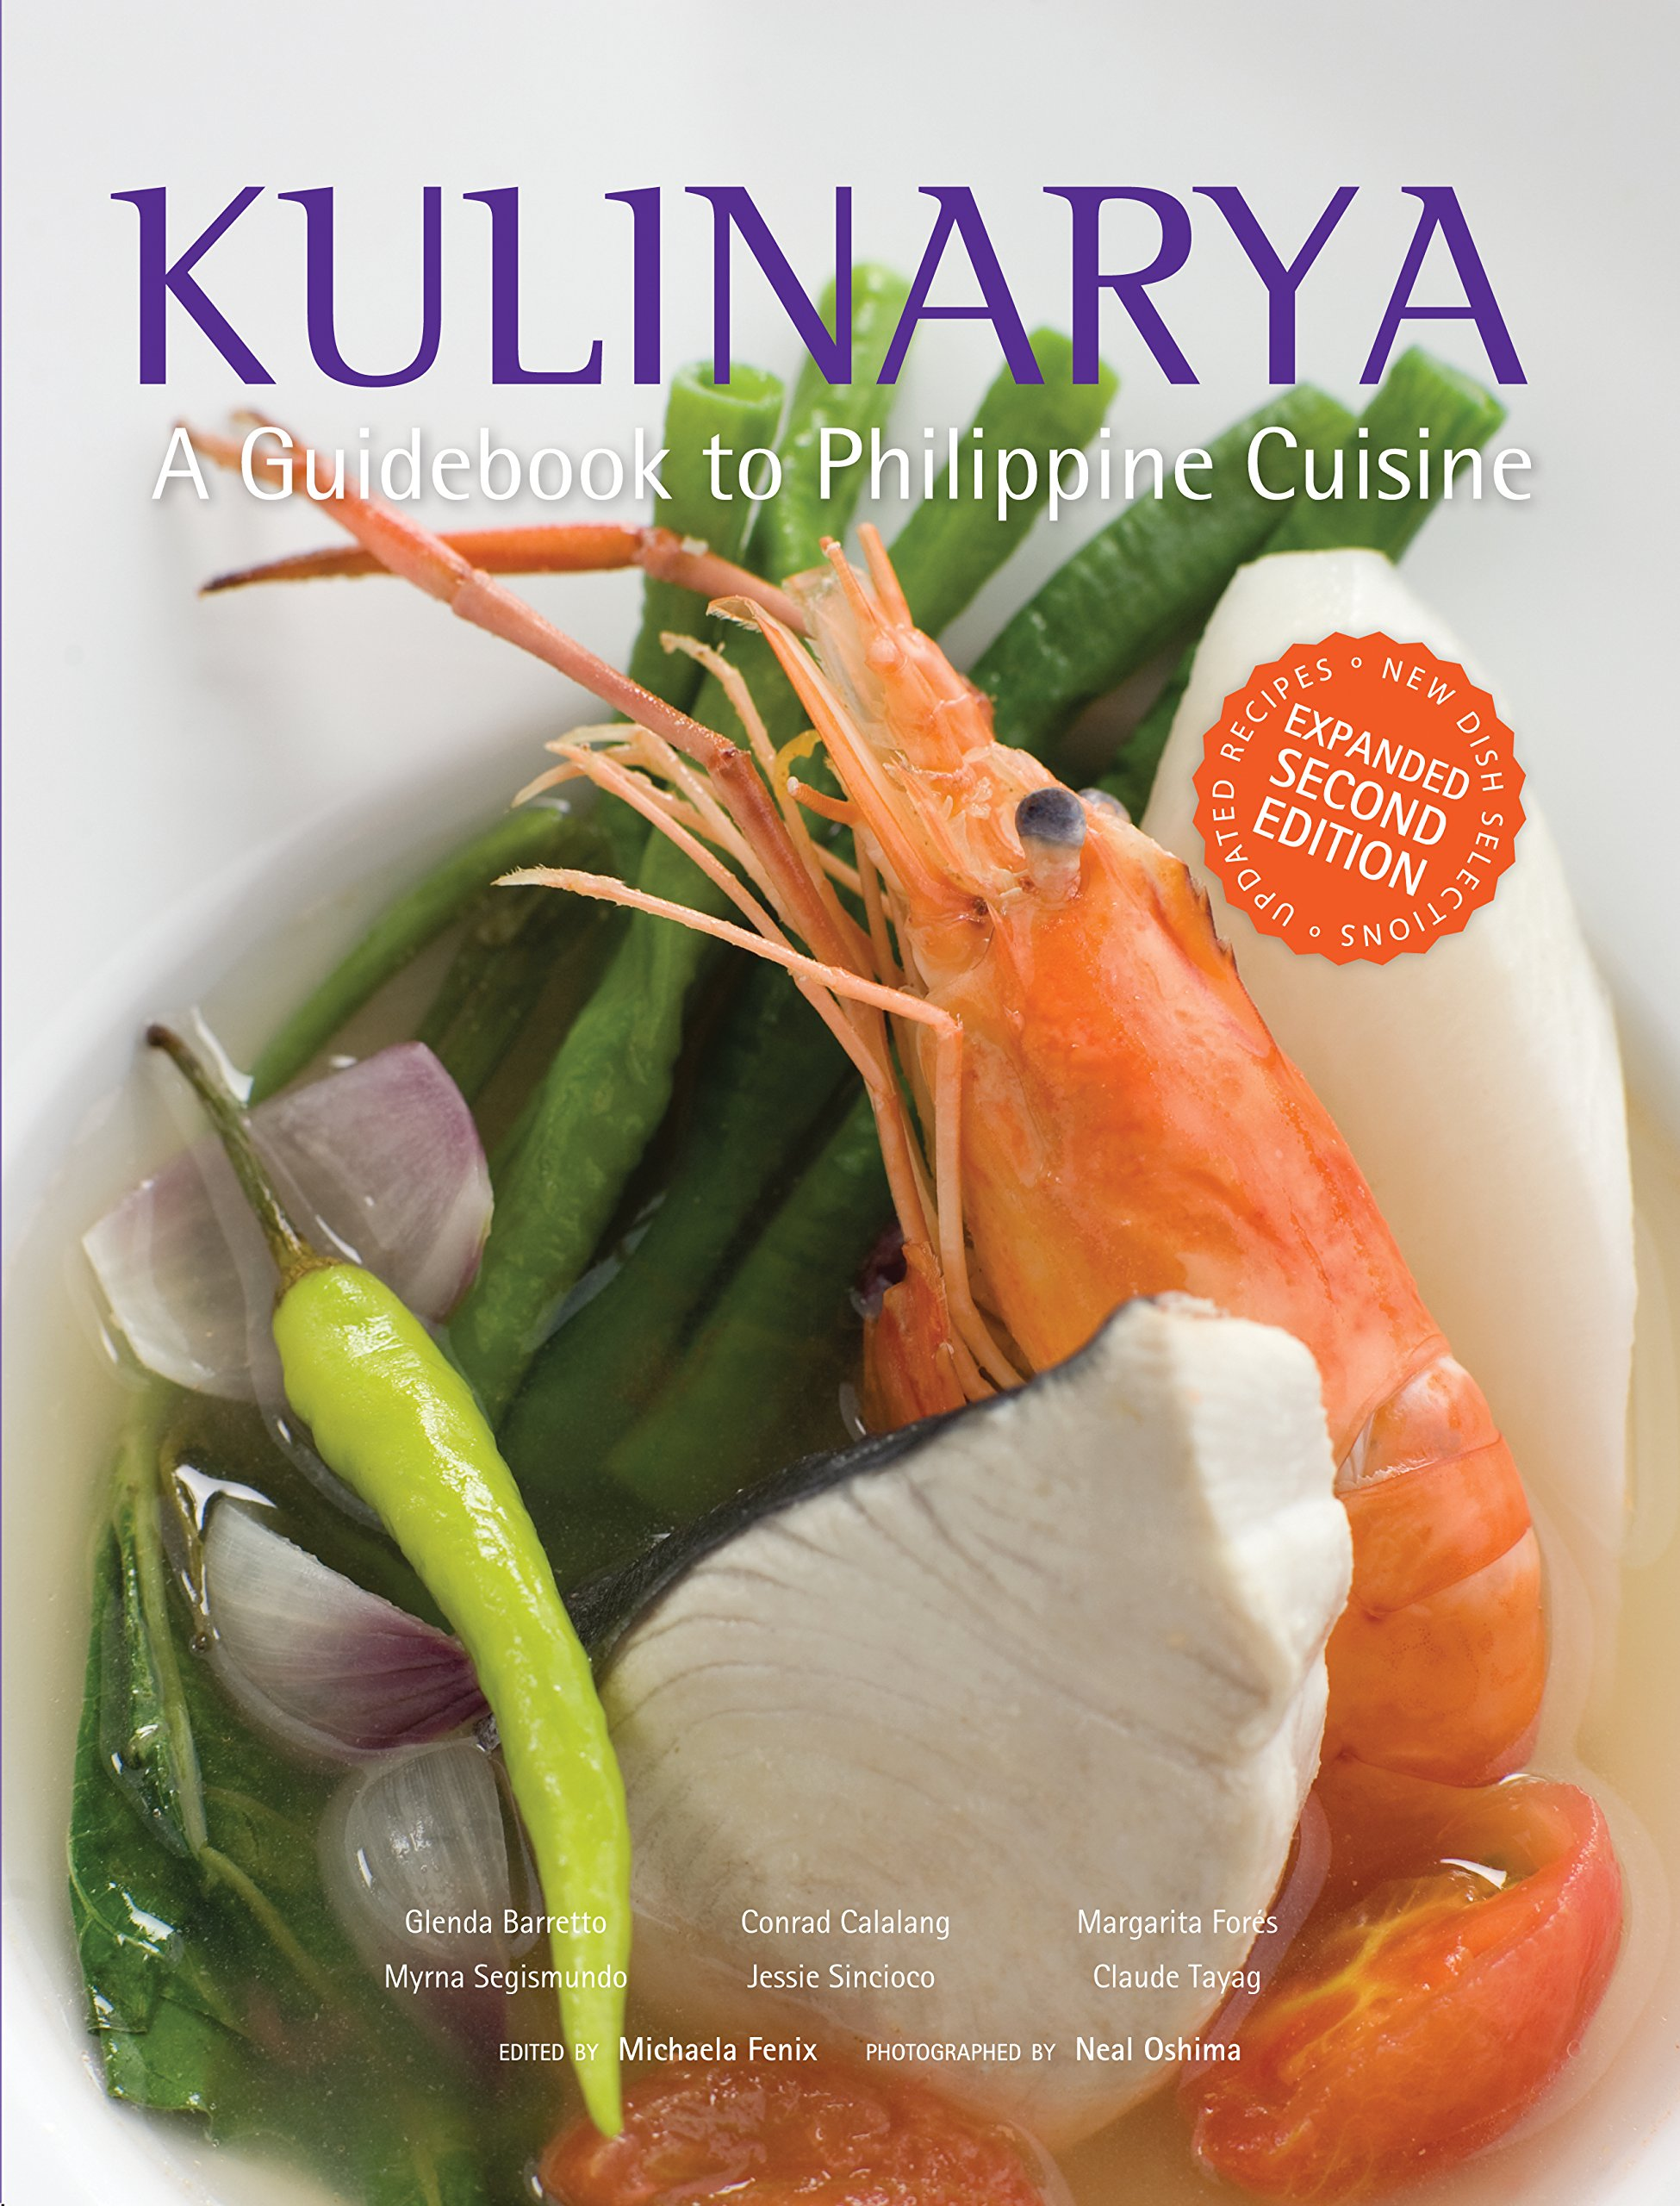 Kulinarya a guidebook to philippine cuisine glenda r barretto et kulinarya a guidebook to philippine cuisine glenda r barretto et al neal oshima 9789712728723 amazon books forumfinder Choice Image